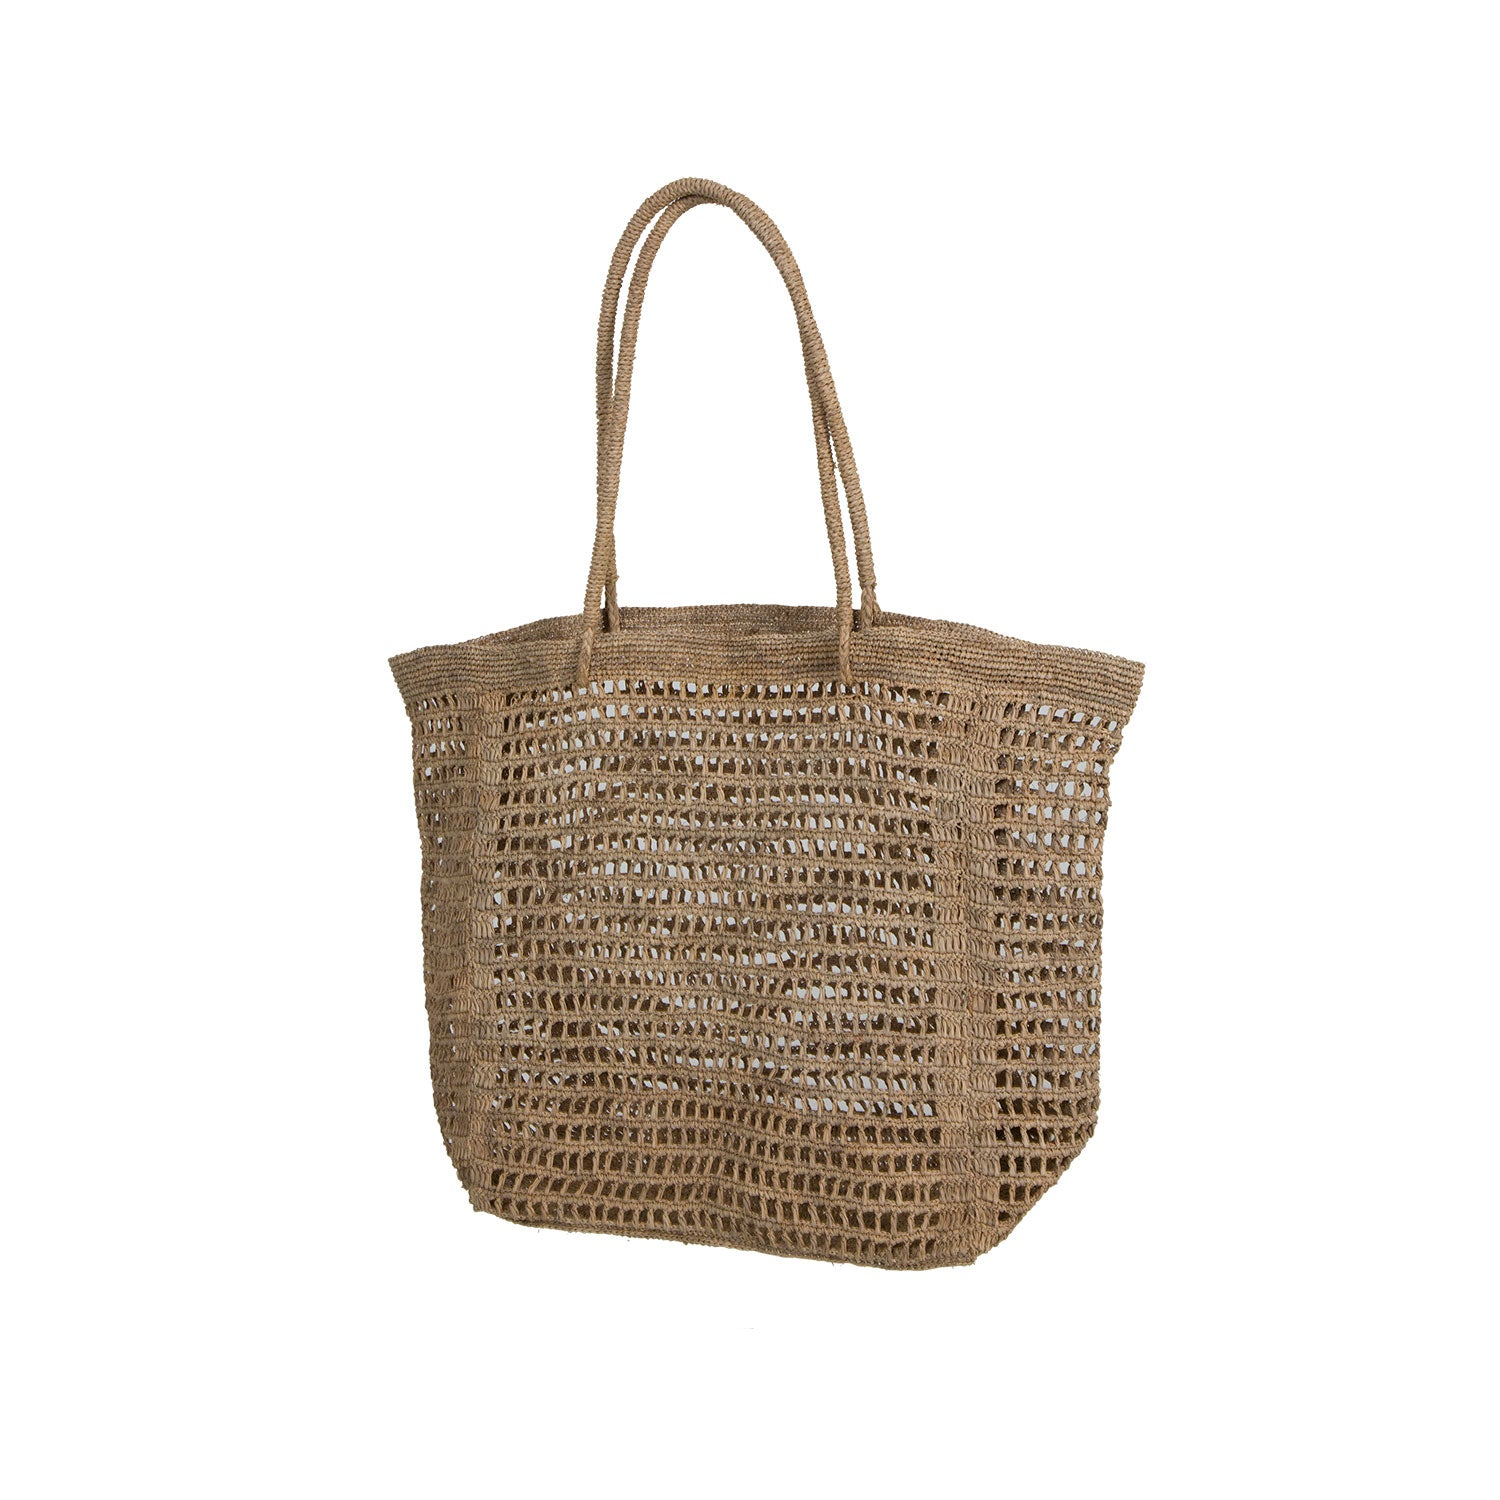 Hit Oversized Raffia Bag in Tea